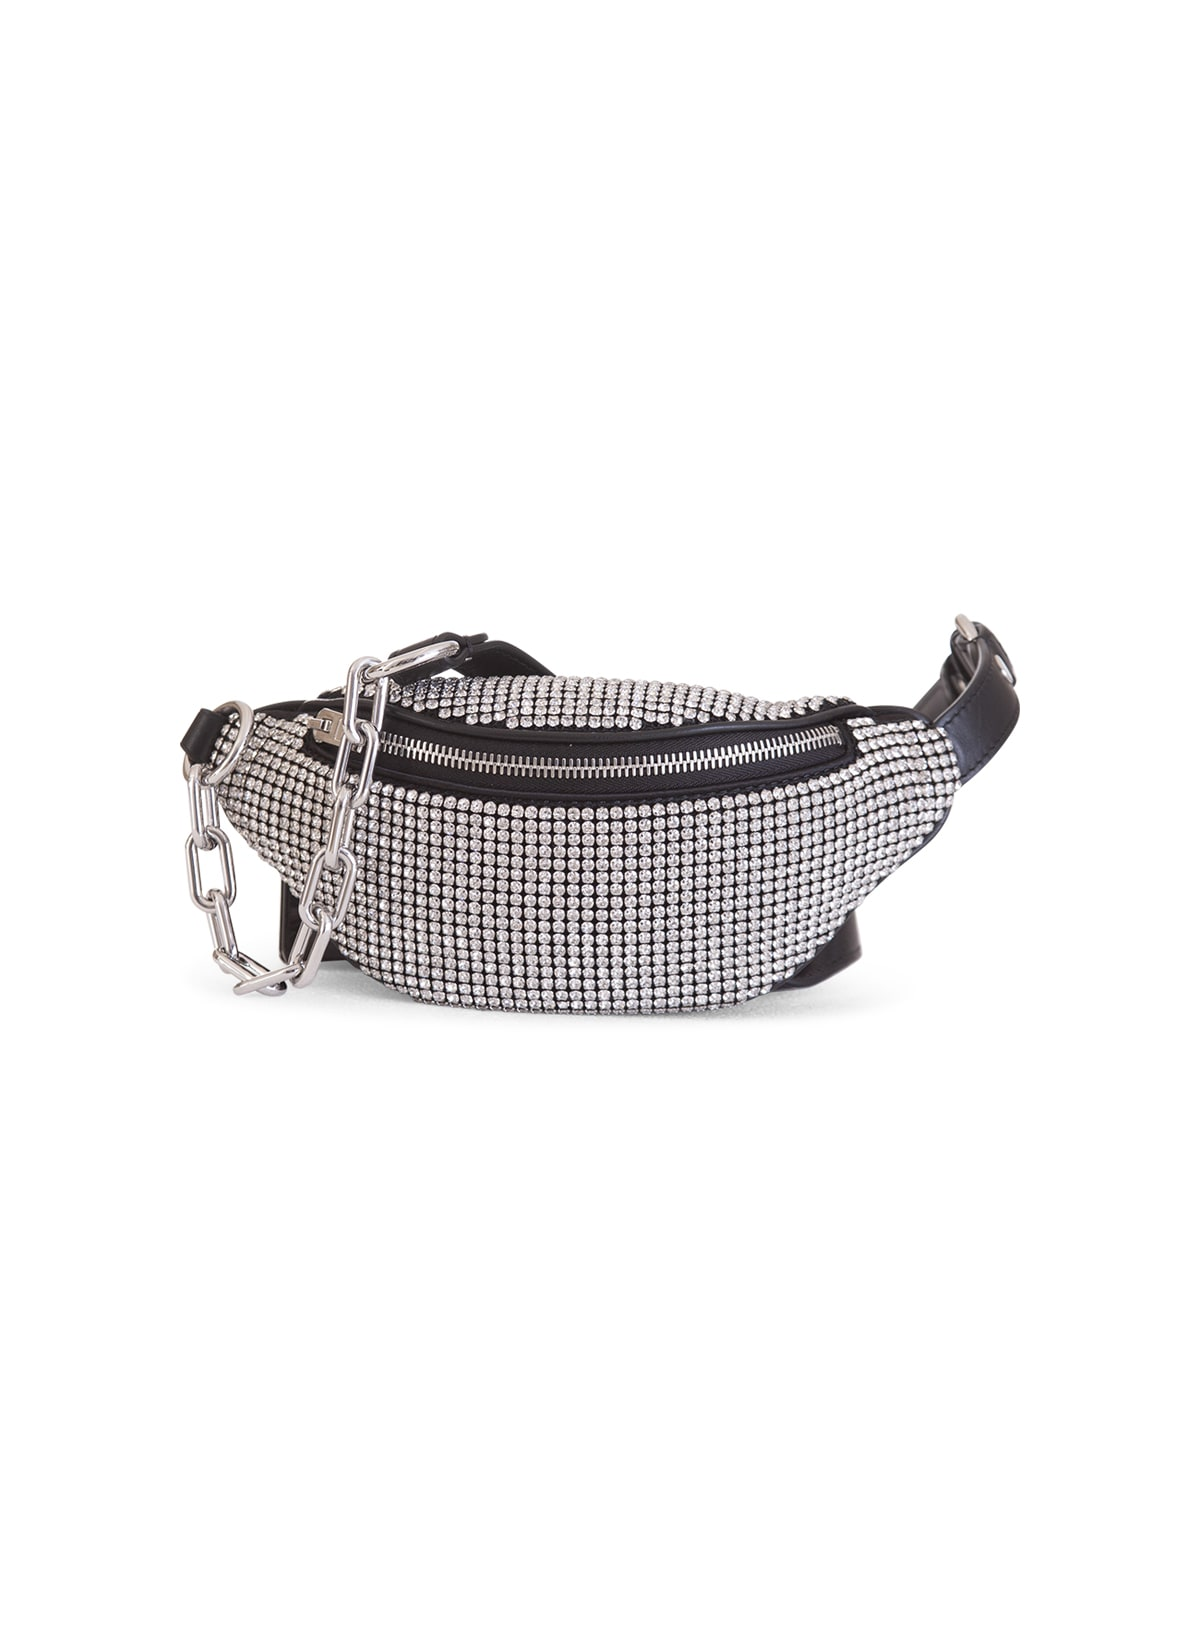 Alexander Wang Attica Rhinestone Mini Fanny Pack In Bianco